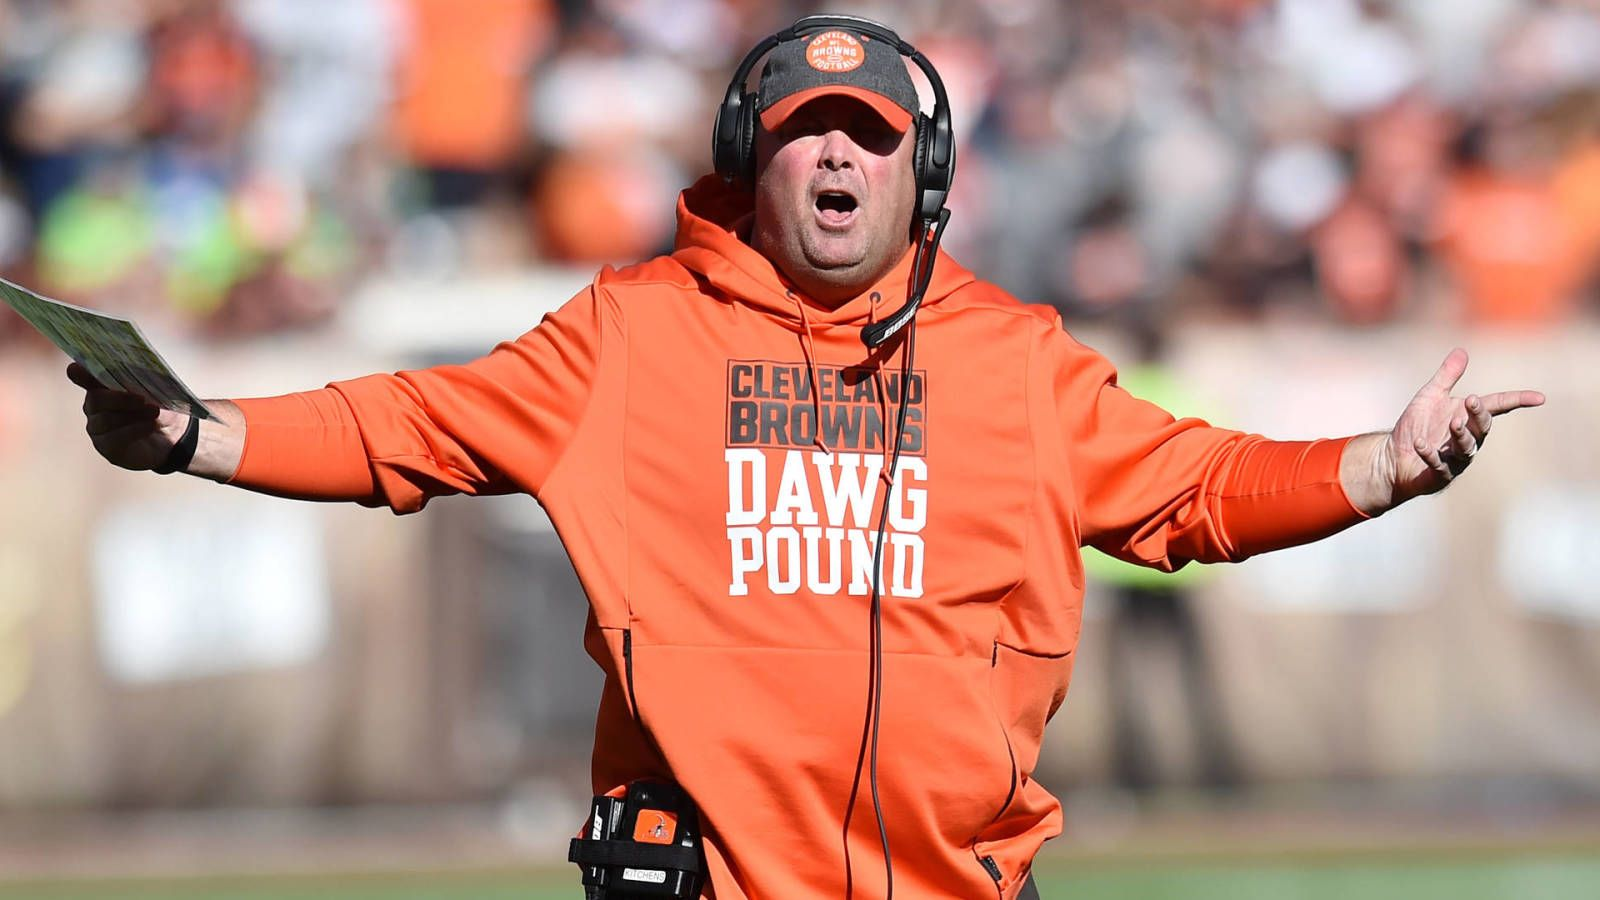 Slumping Browns should jettison head coach Freddie Kitchens